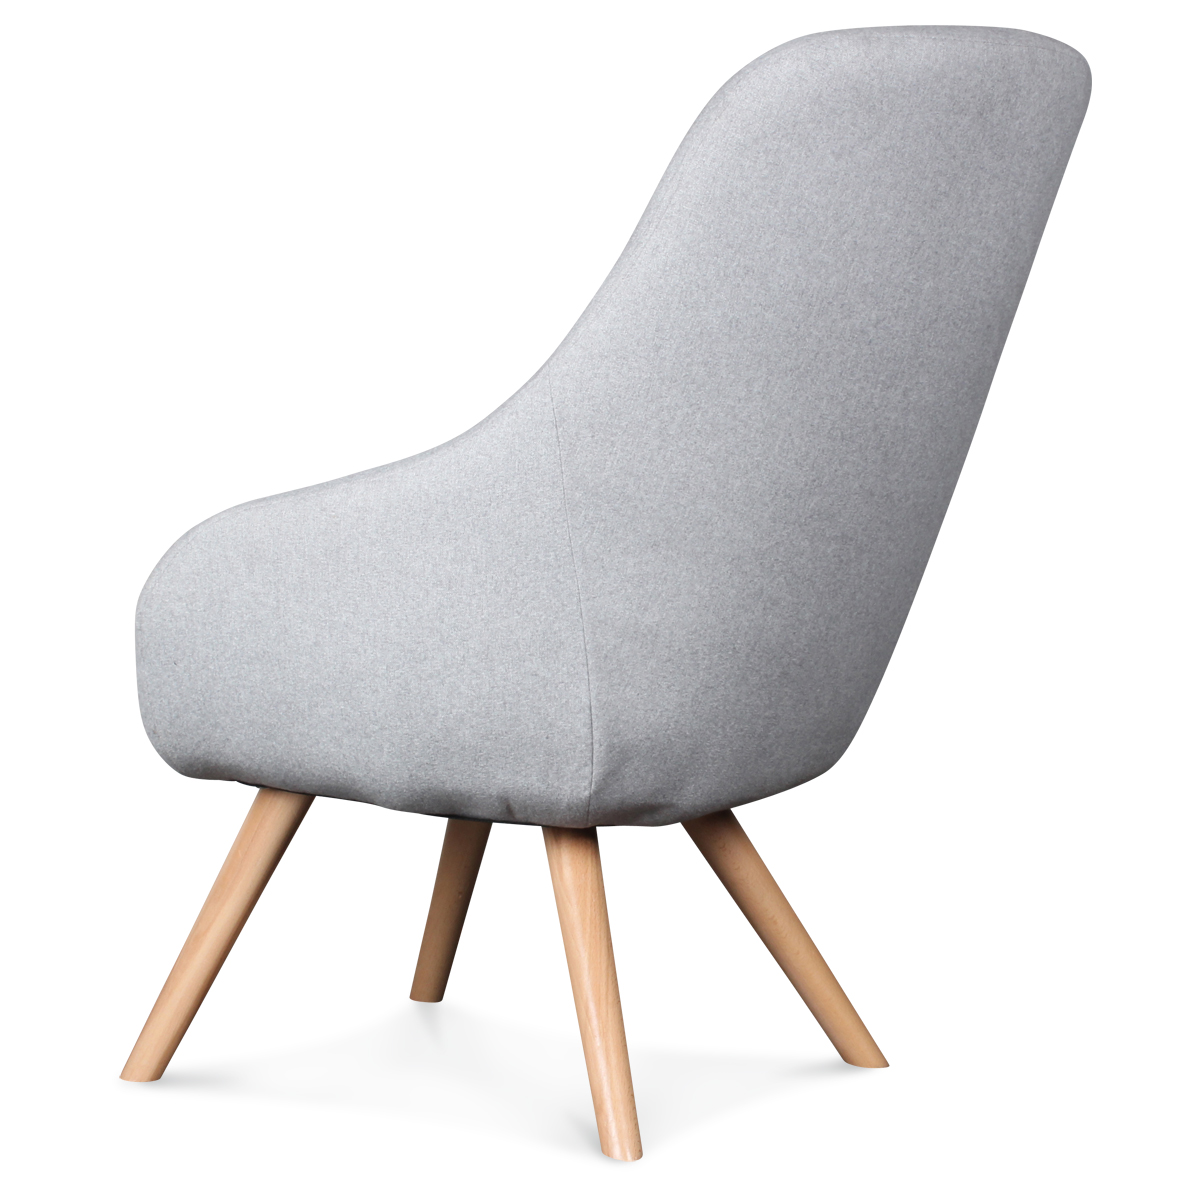 fauteuil design scandinave tissu gris flanelle egg demeure et jardin. Black Bedroom Furniture Sets. Home Design Ideas